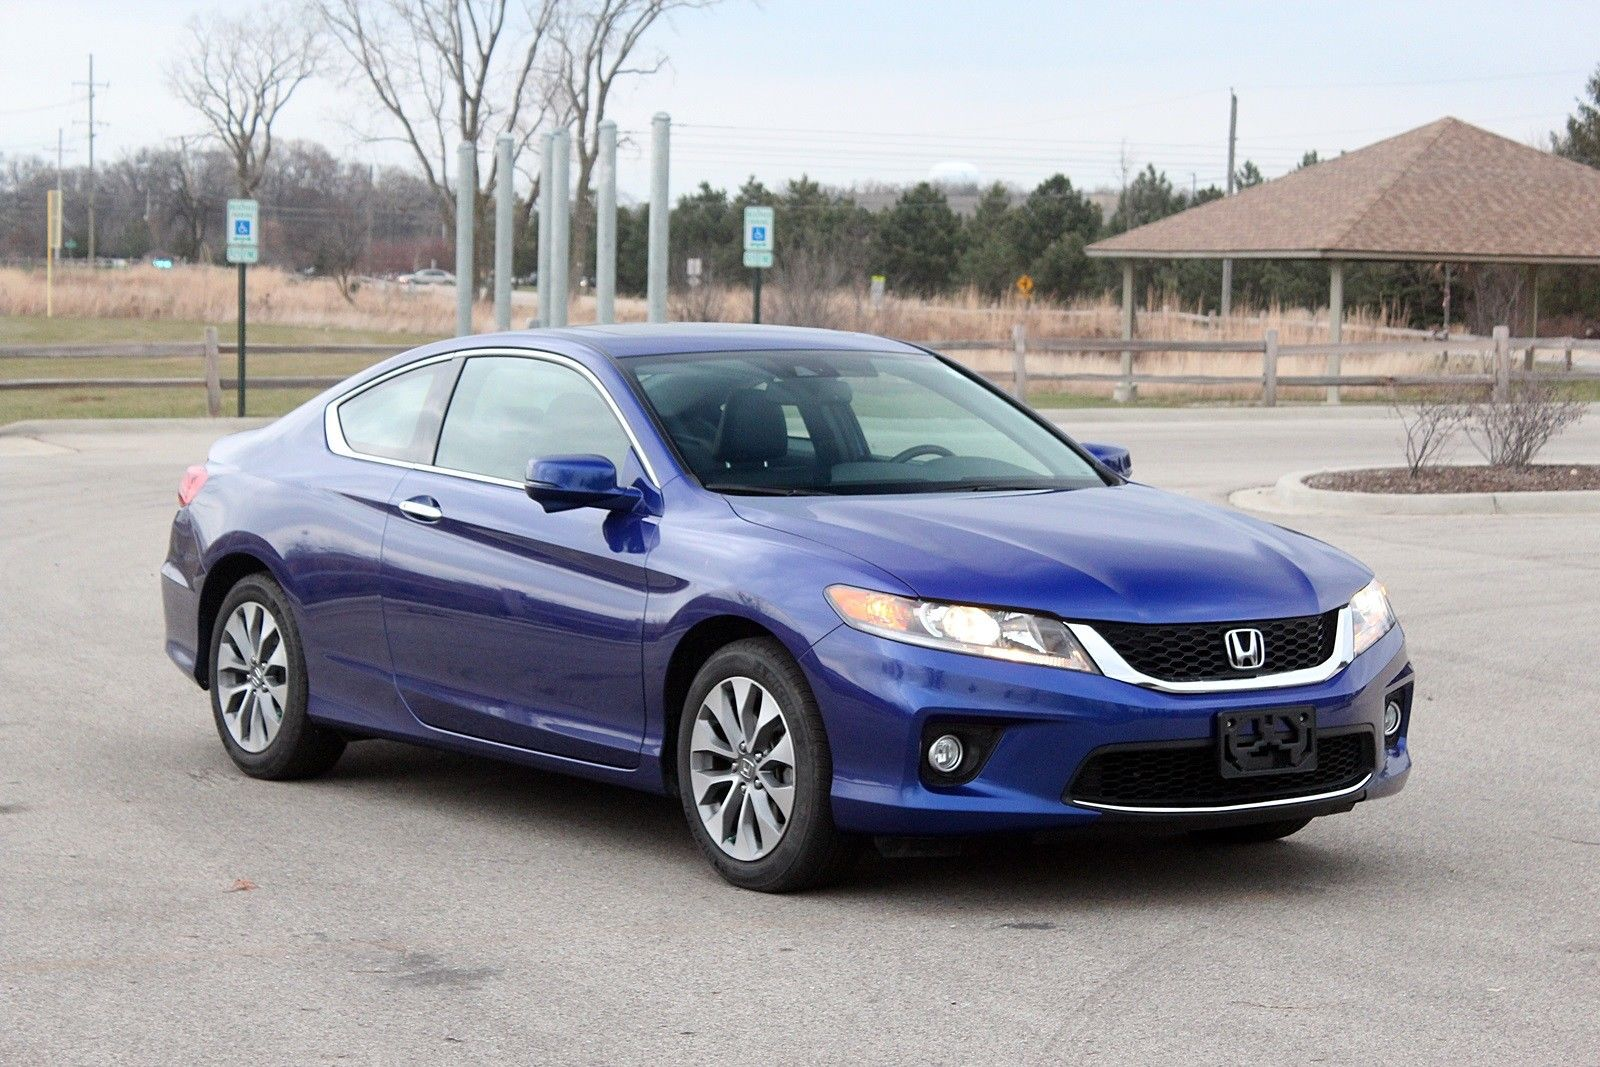 accord l ex hybrid honda wallpaper exl